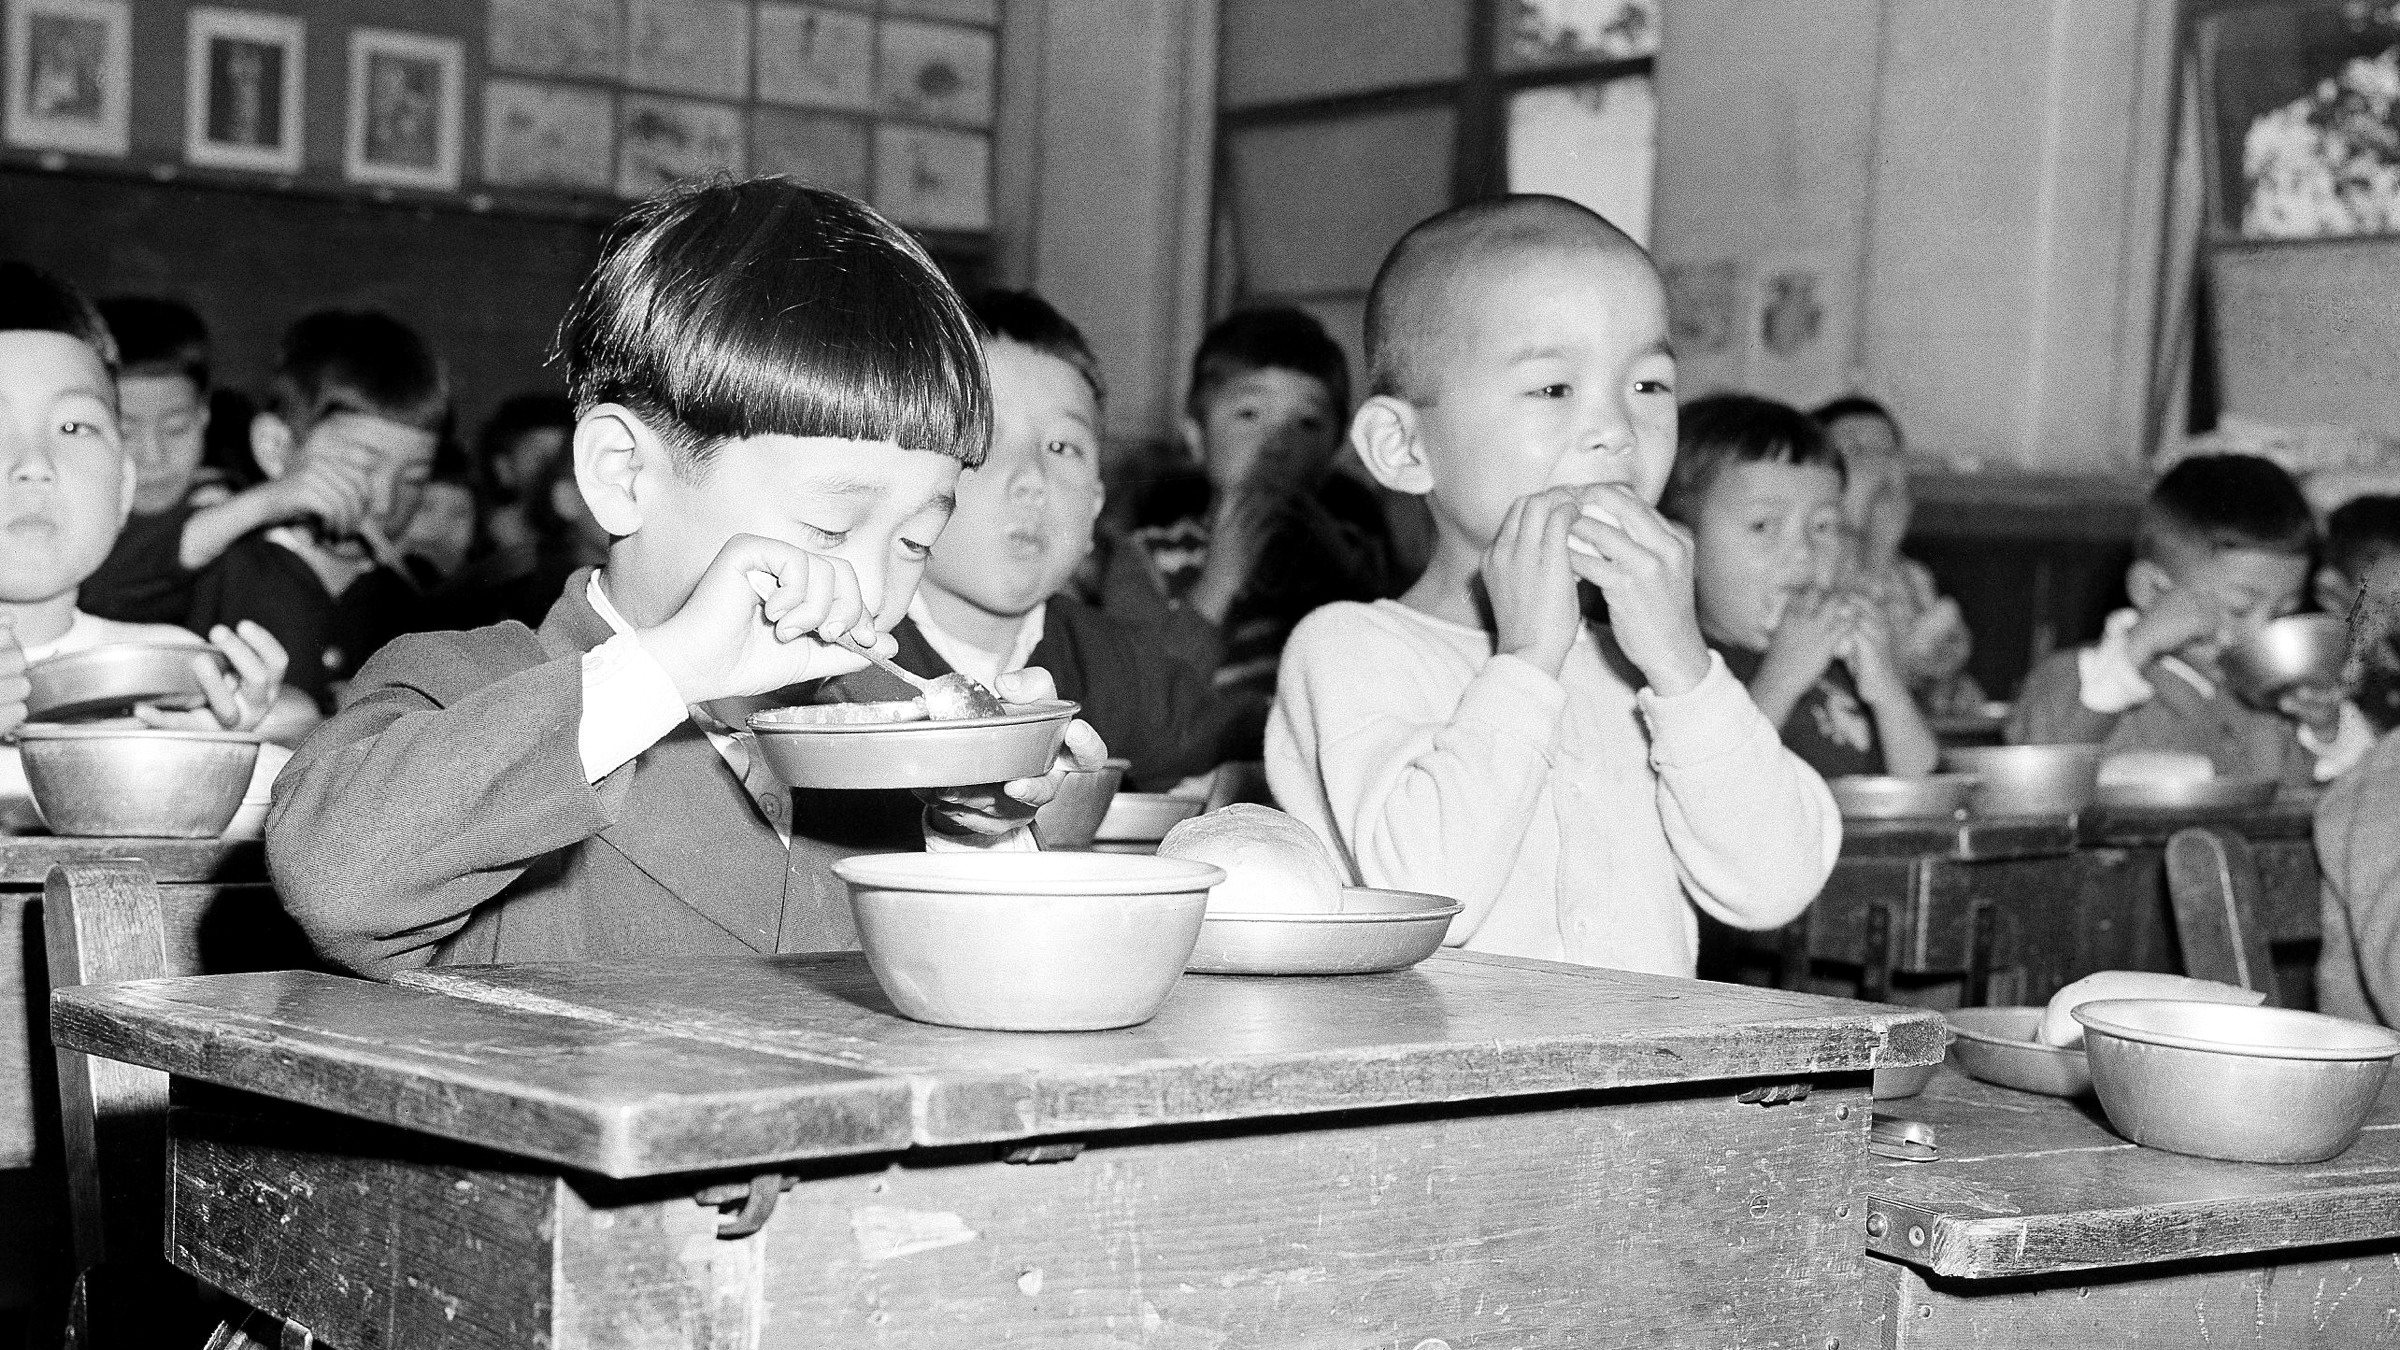 At their desks in classroom, children eat their lunch, furnished through UNICEP - United Nations International Children's Emergency Fund - in Japan on Jan. 5, 1952. (AP Photo/Yuichi Jackson Ishizaki)